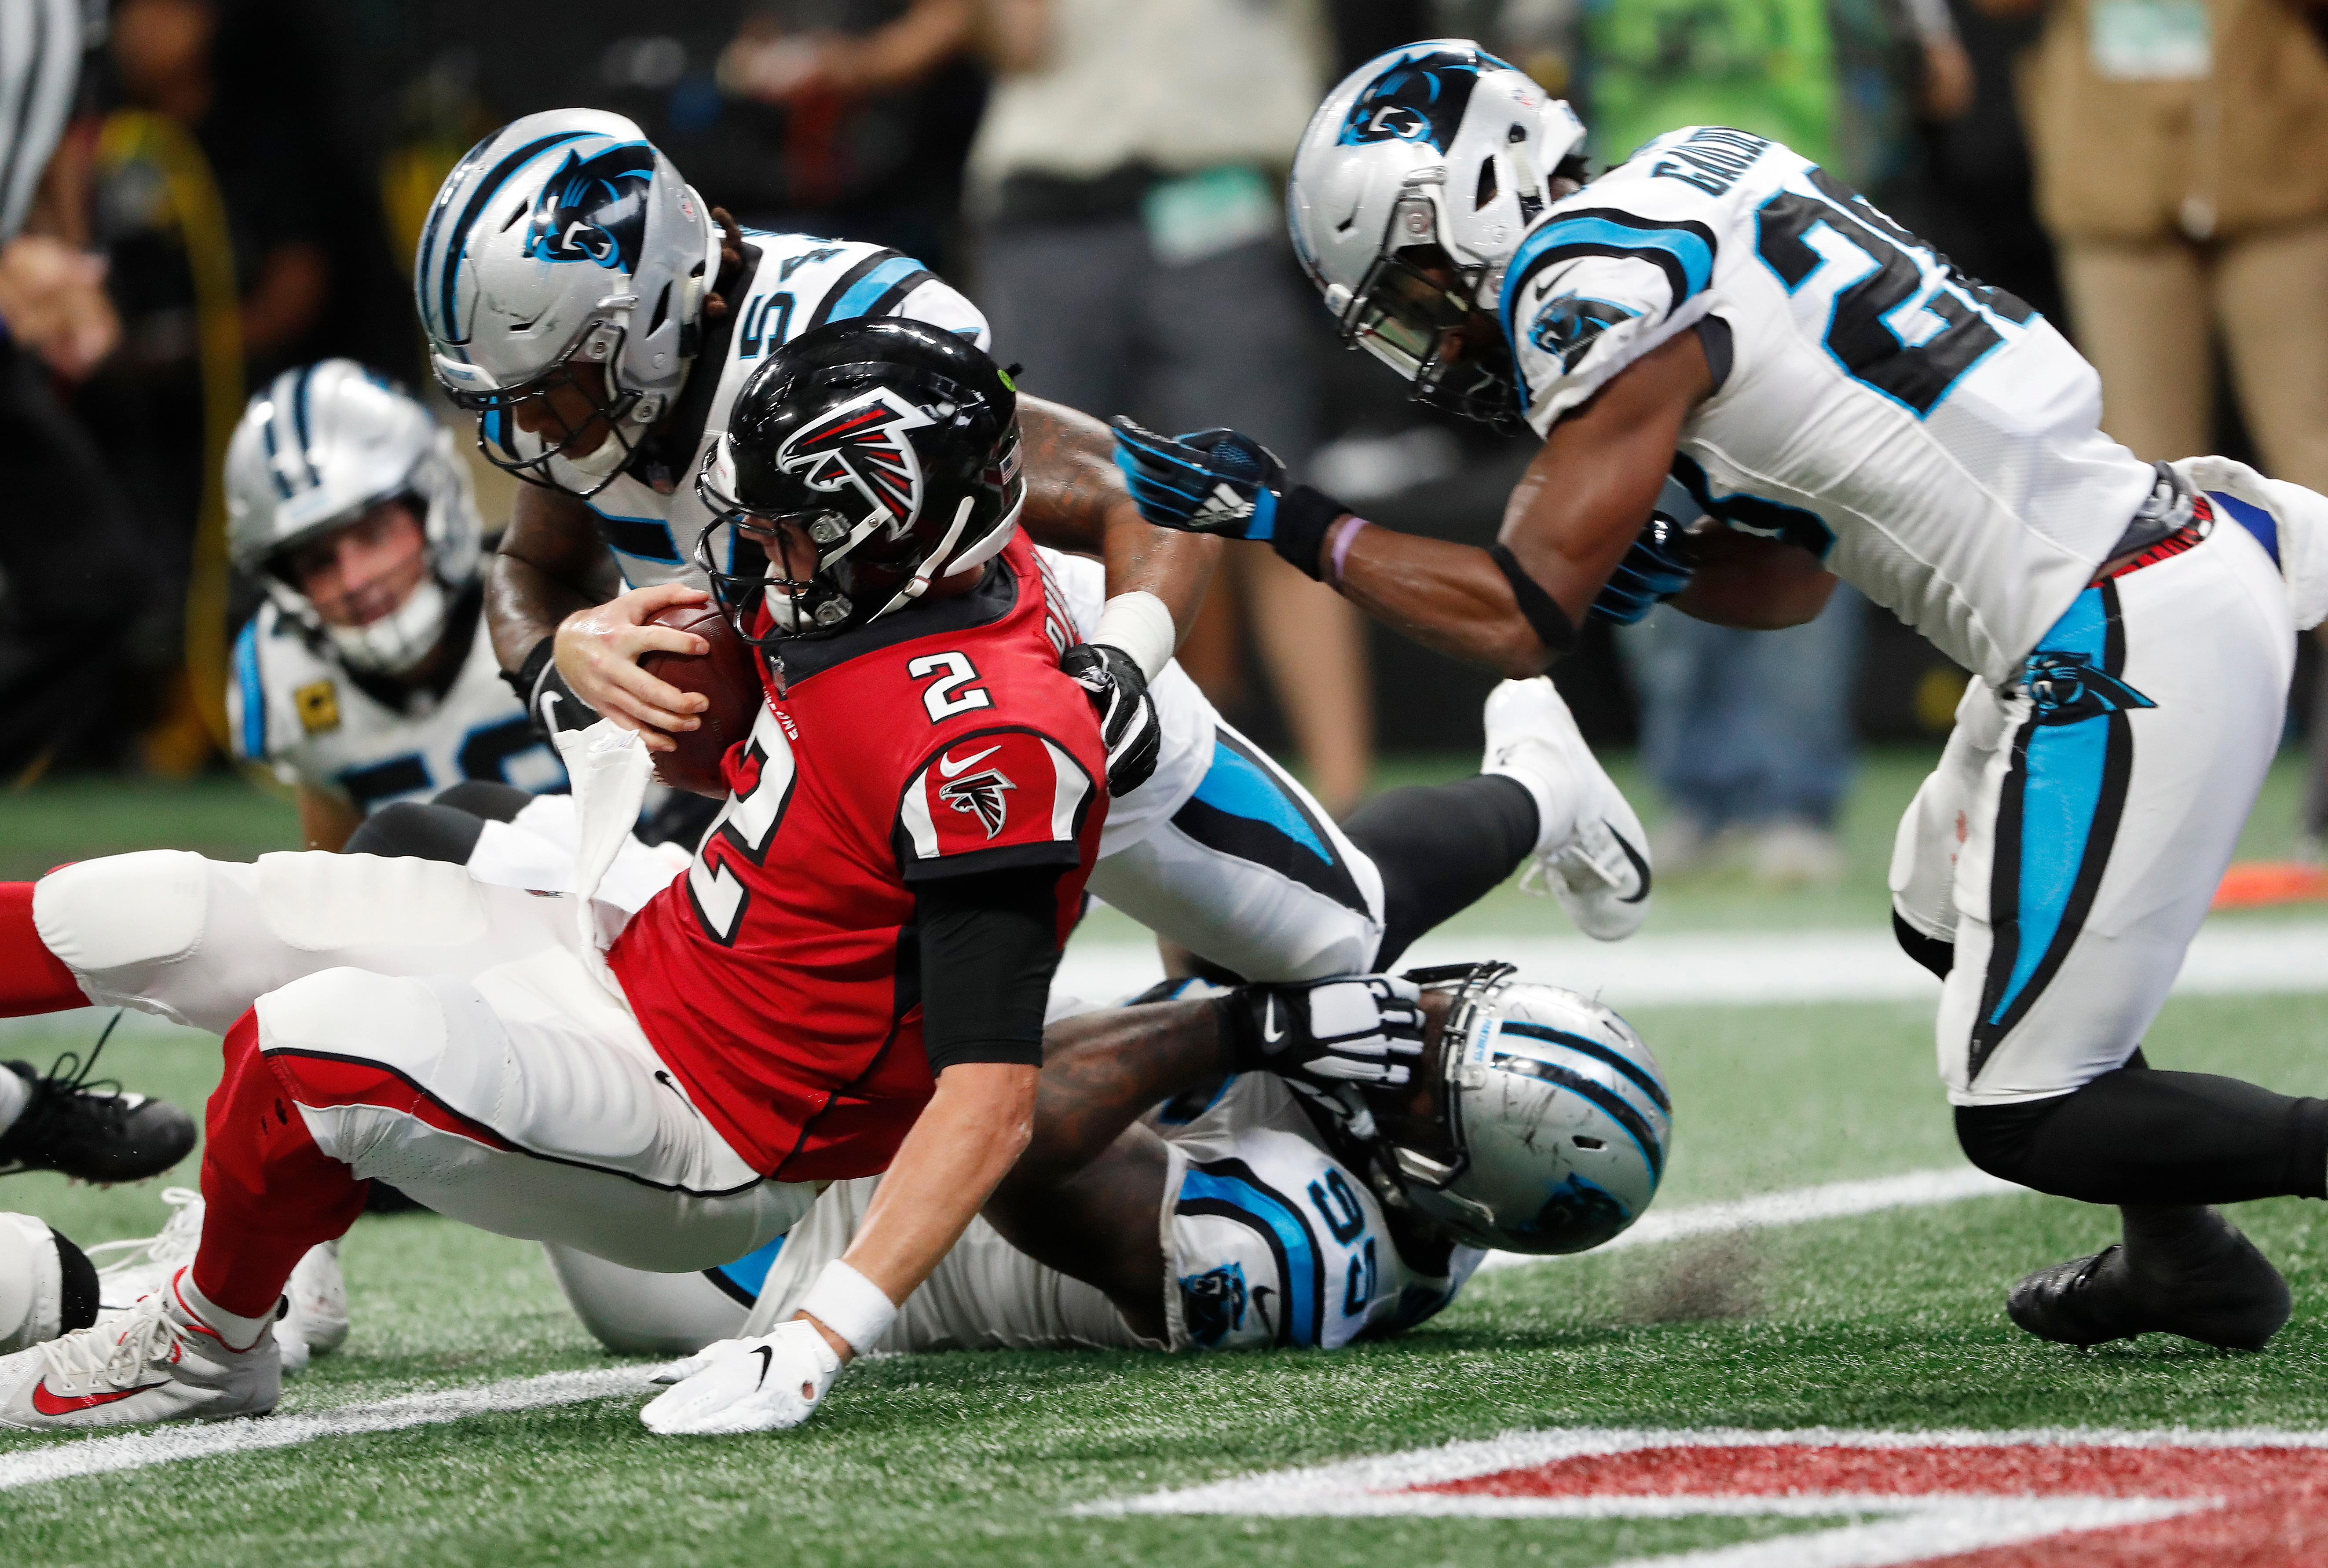 Atlanta Falcons quarterback Matt Ryan (2) leaps for a touchdown as Carolina Panthers linebacker Shaq Green-Thompson (54) defends during the second half of an NFL football game, Sunday, Sept. 16, 2018, in Atlanta. (AP Photo/John Bazemore)